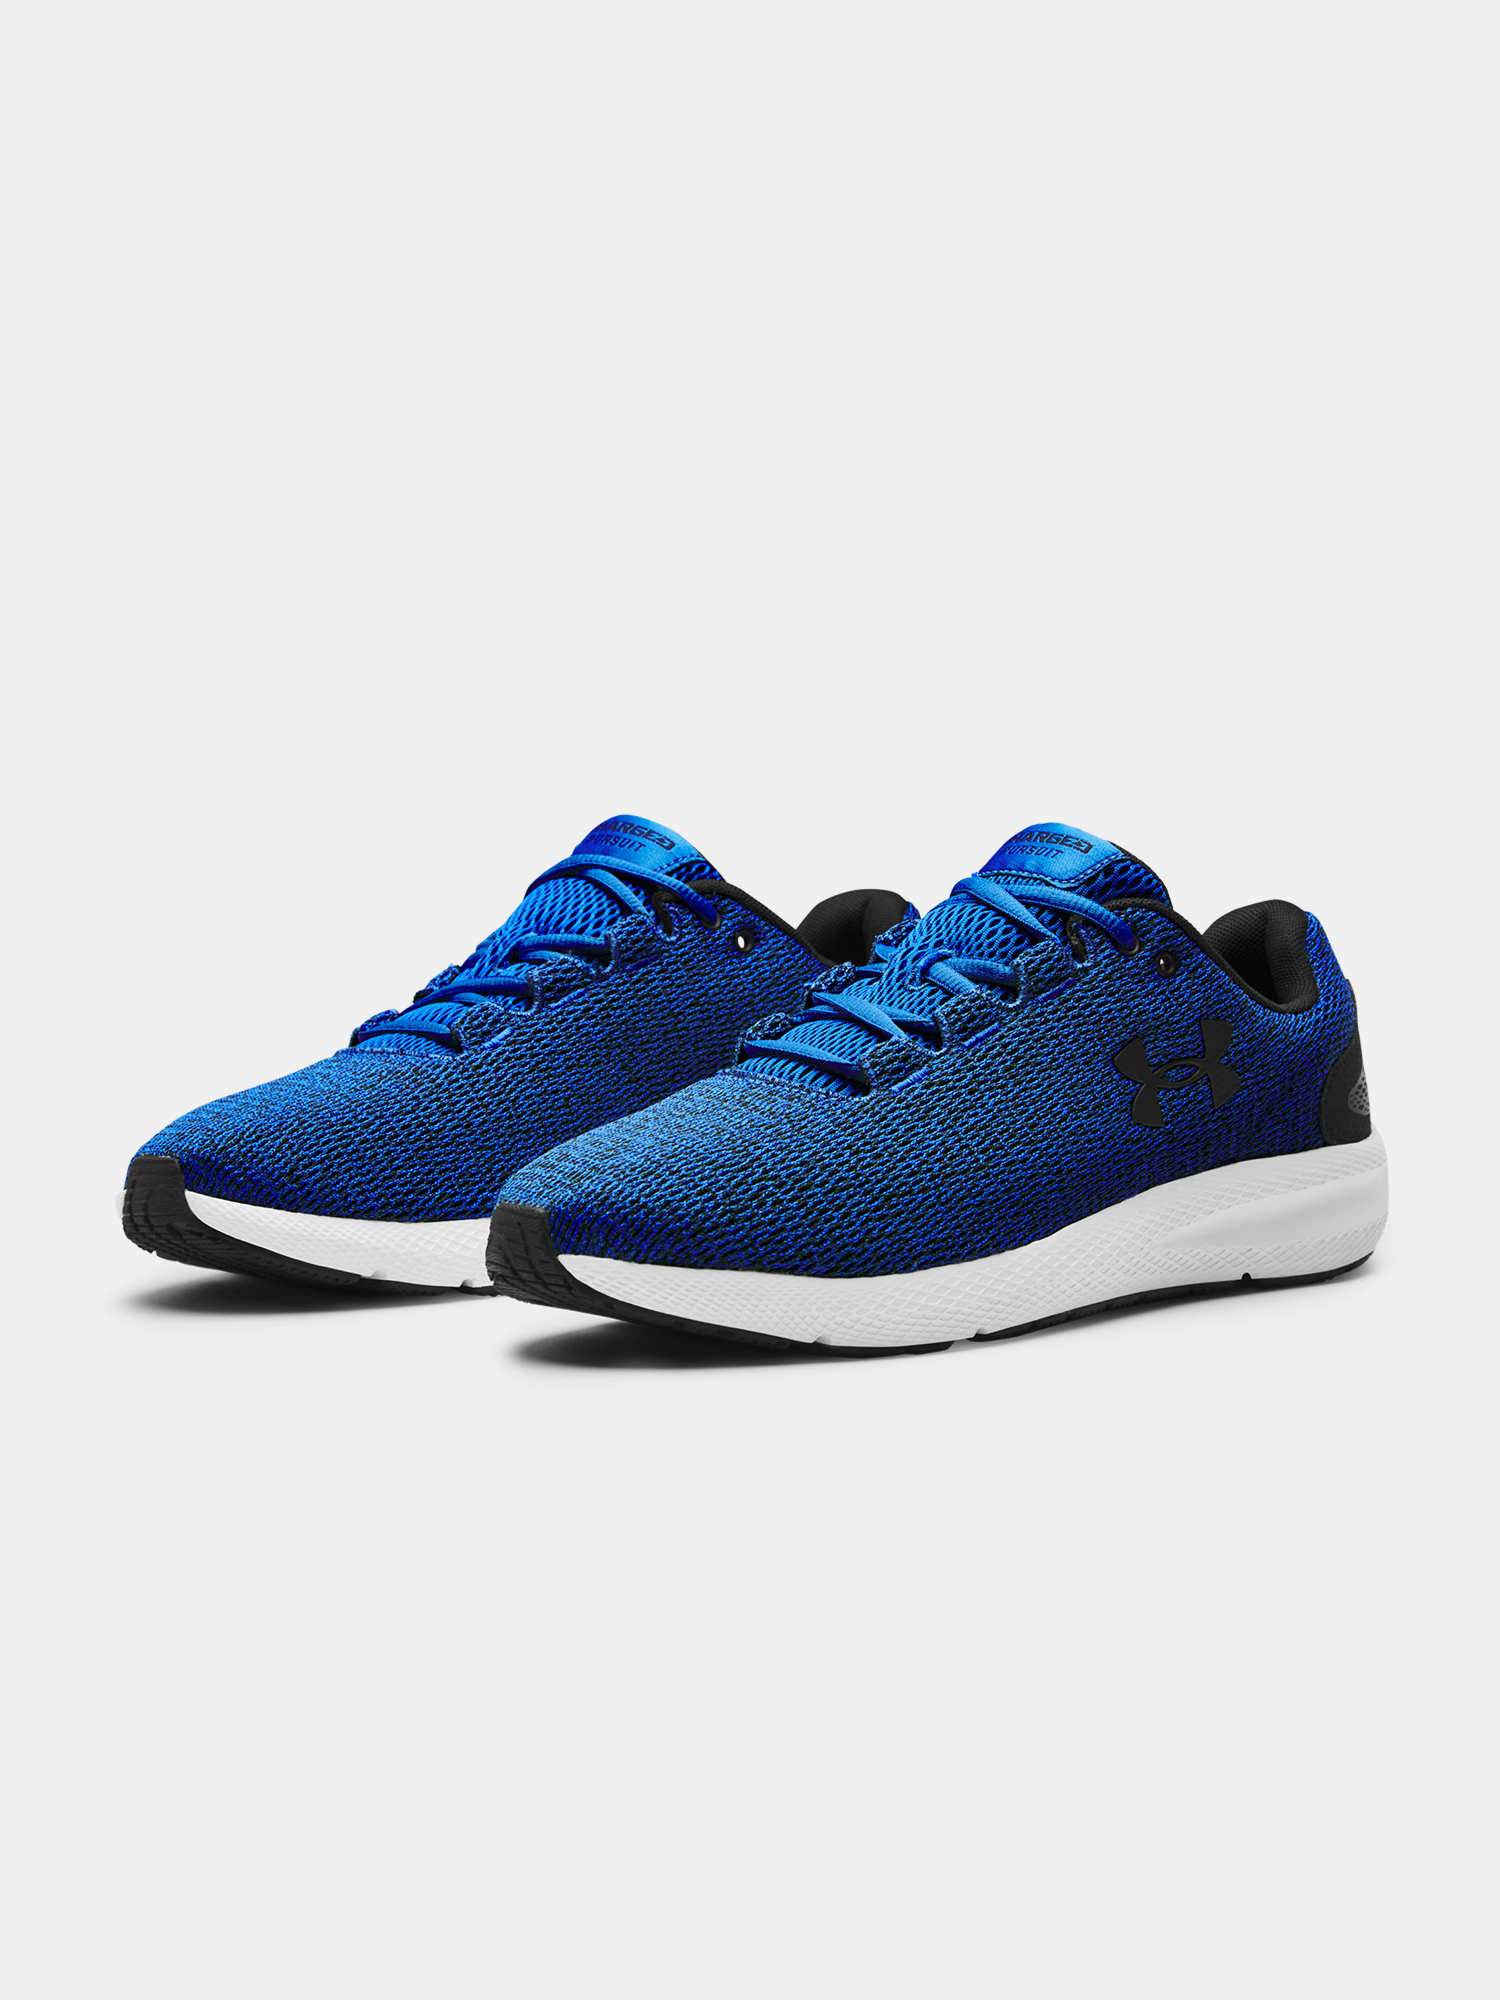 Boty Under Armour Charged Pursuit 2 Twist (3)